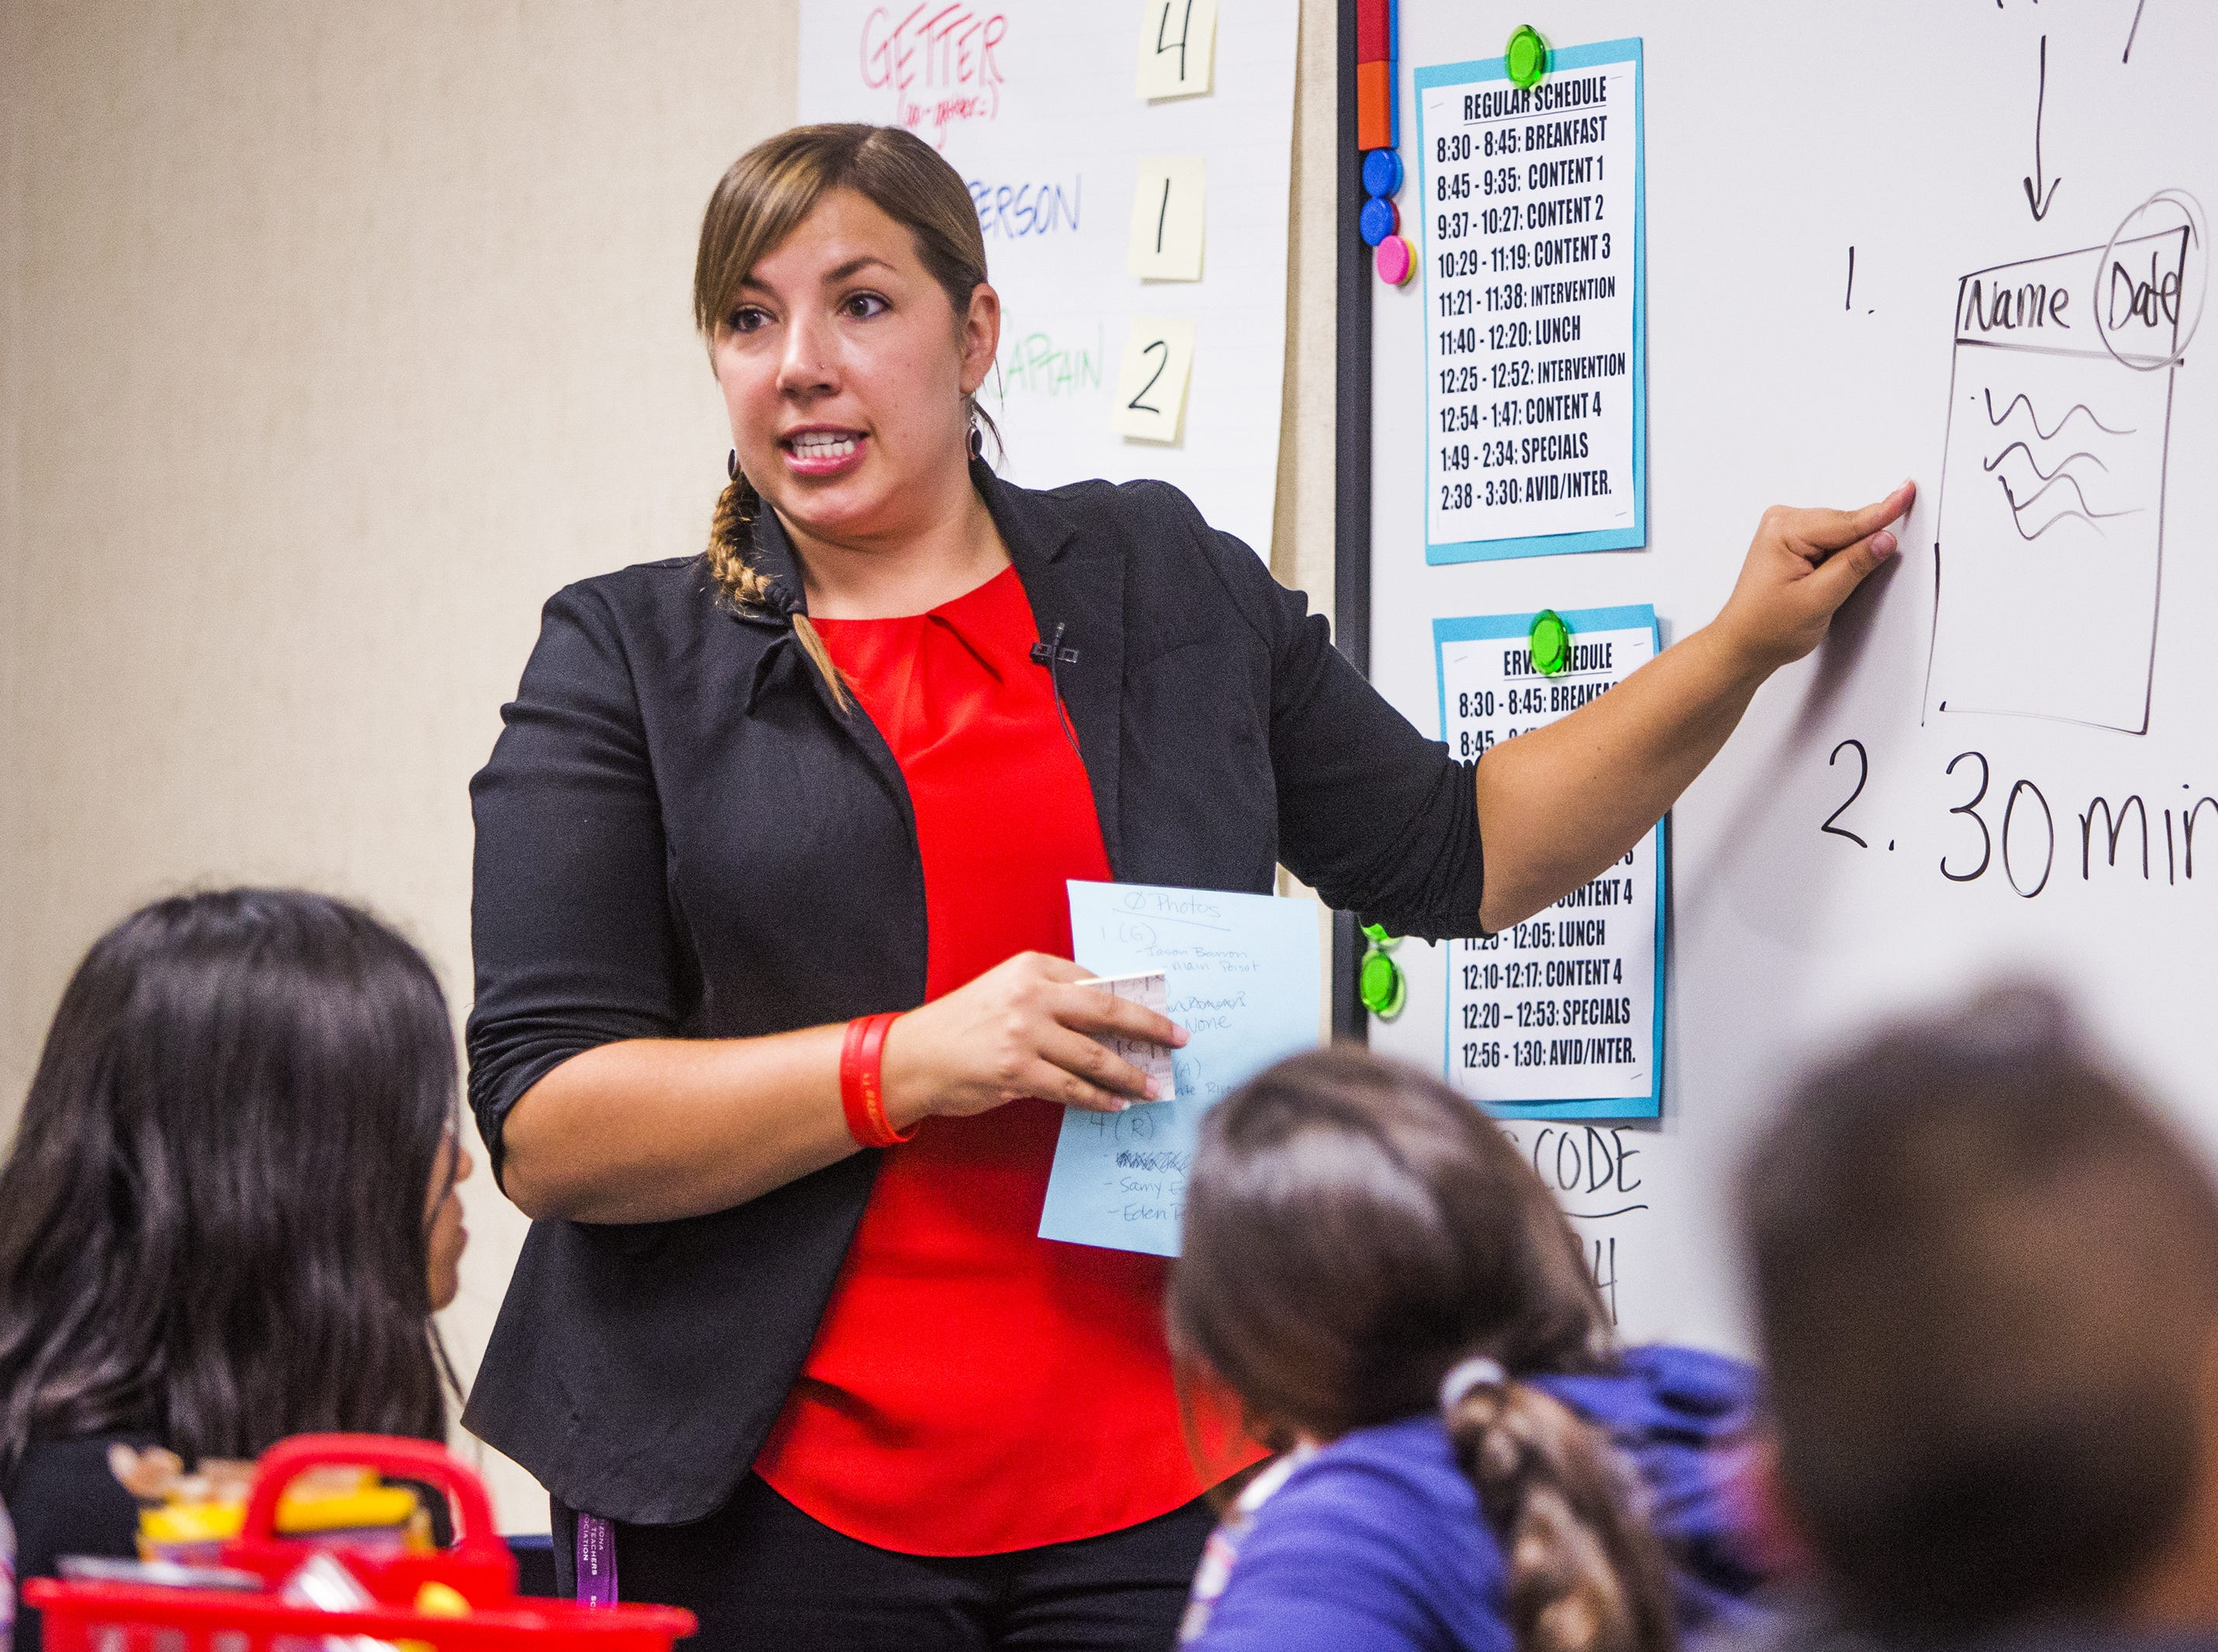 Rebecca Garelli teaches her 6th grade class at Sevilla West Elementary School in Phoenix, Monday afternoon, September 17, 2018. Garelli has been one of the leaders of the #RedforEd movement, demanding increased funding for education in Arizona.